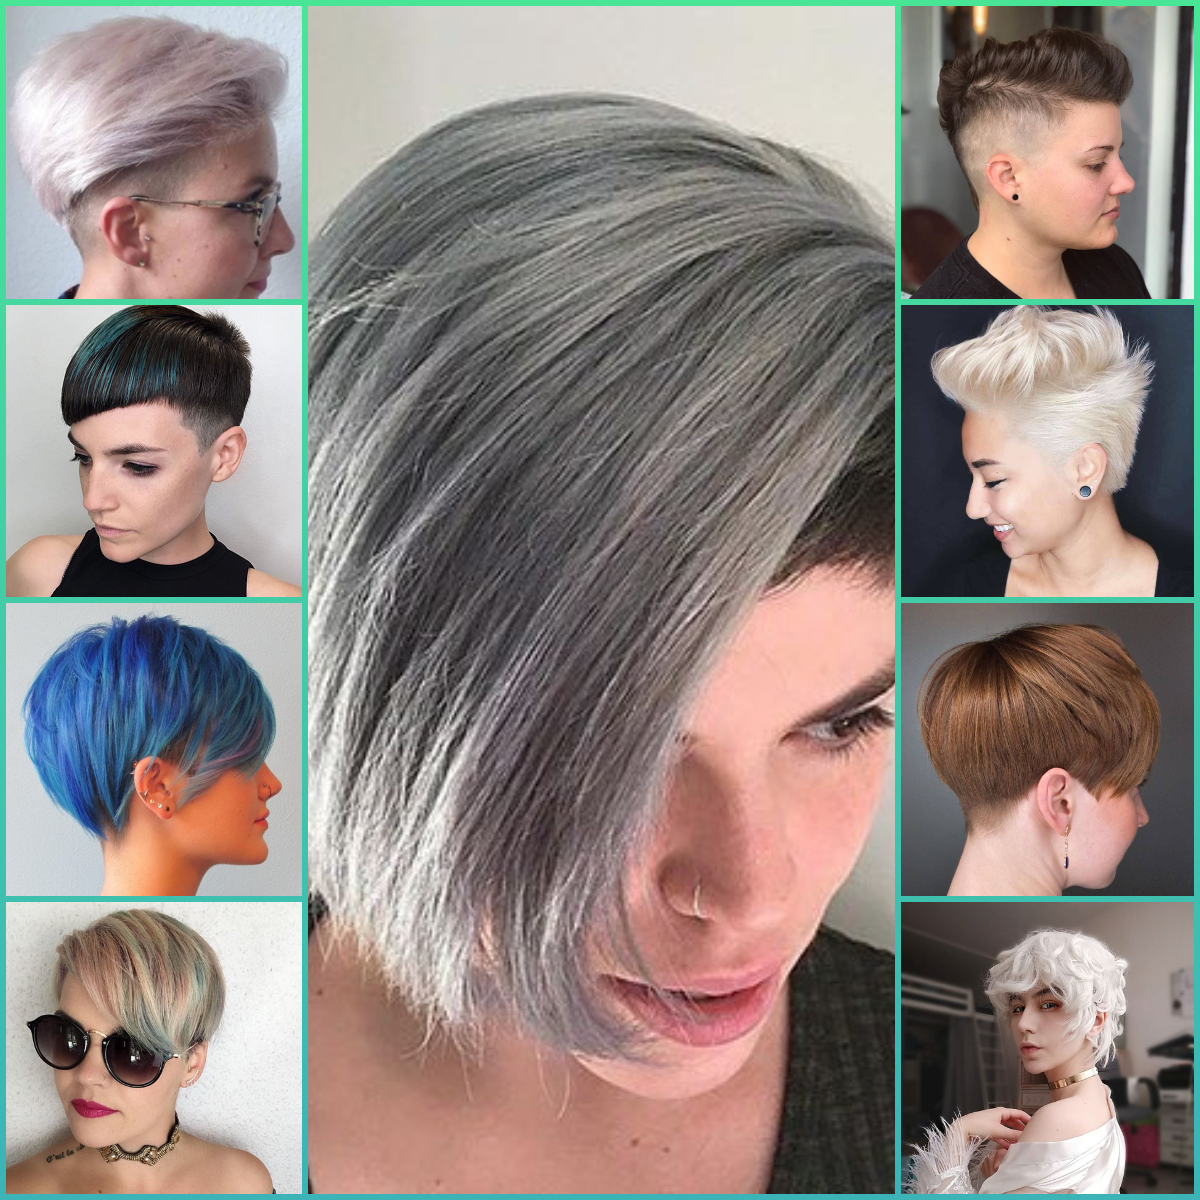 Pixie Cut Hair 2020 Different Types Of Women Short Hairs |